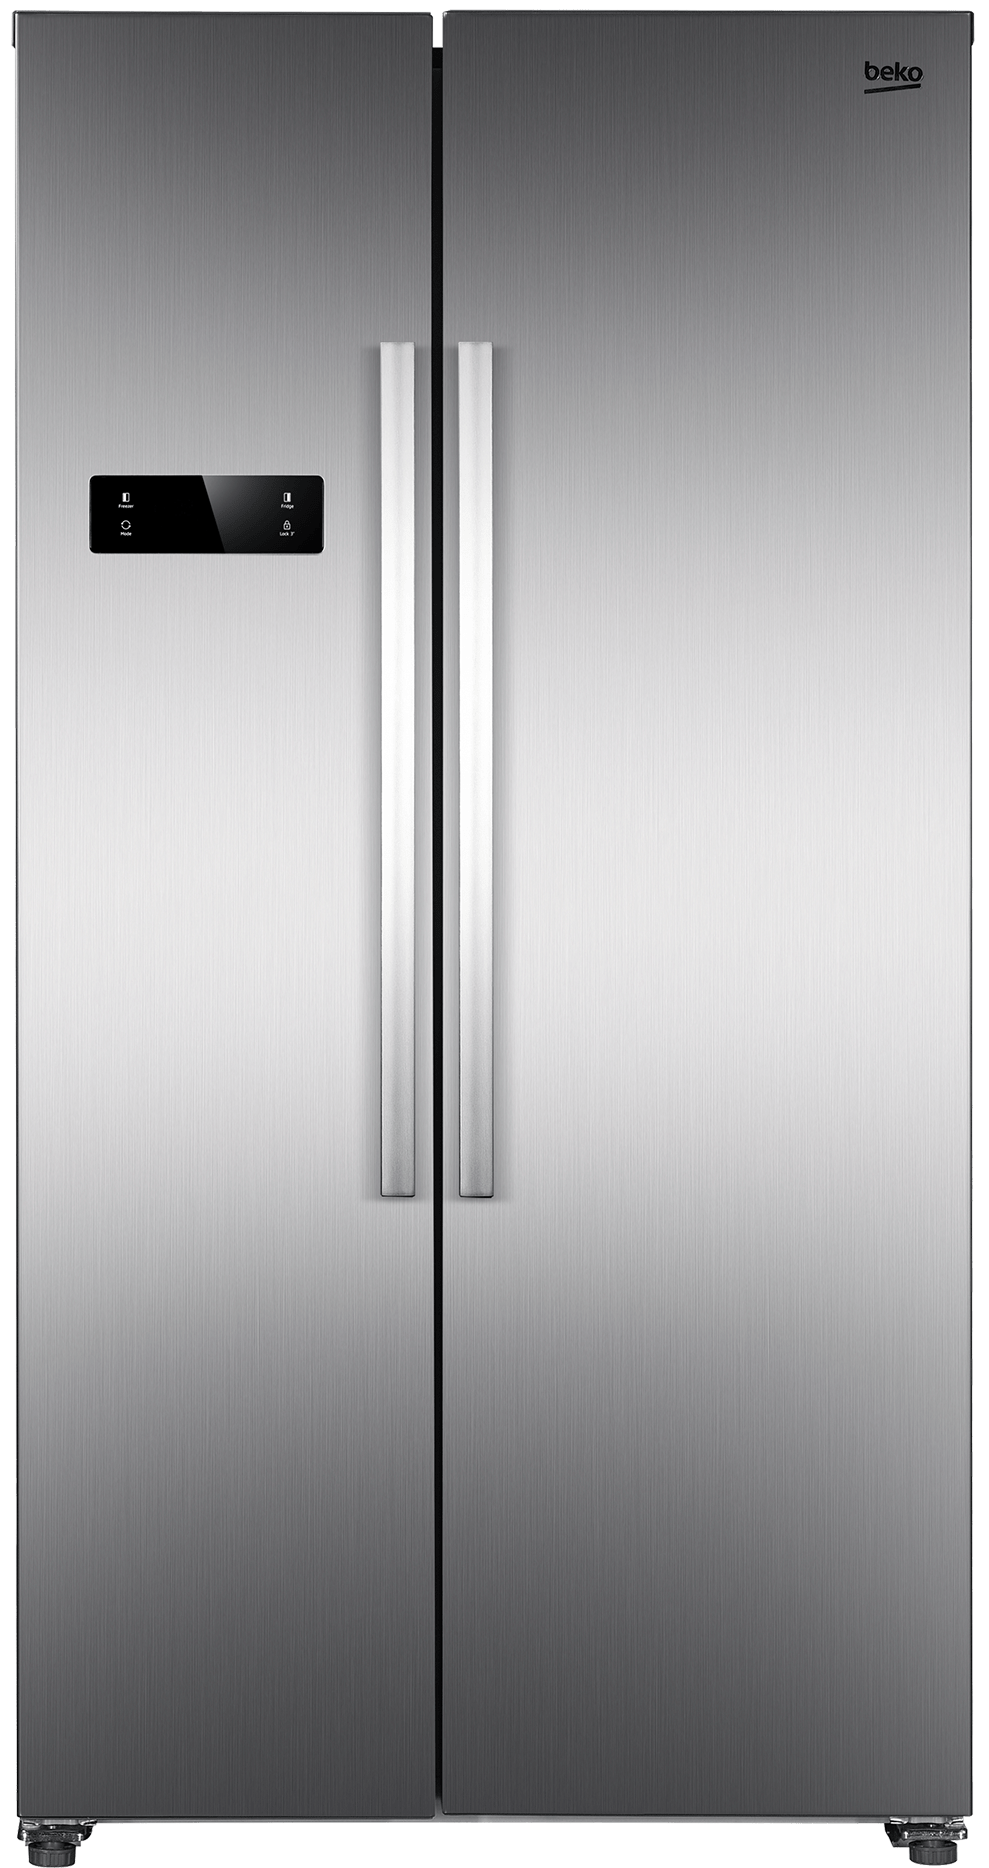 frigorifico side by side beko gno4321xp inox 177 cm a